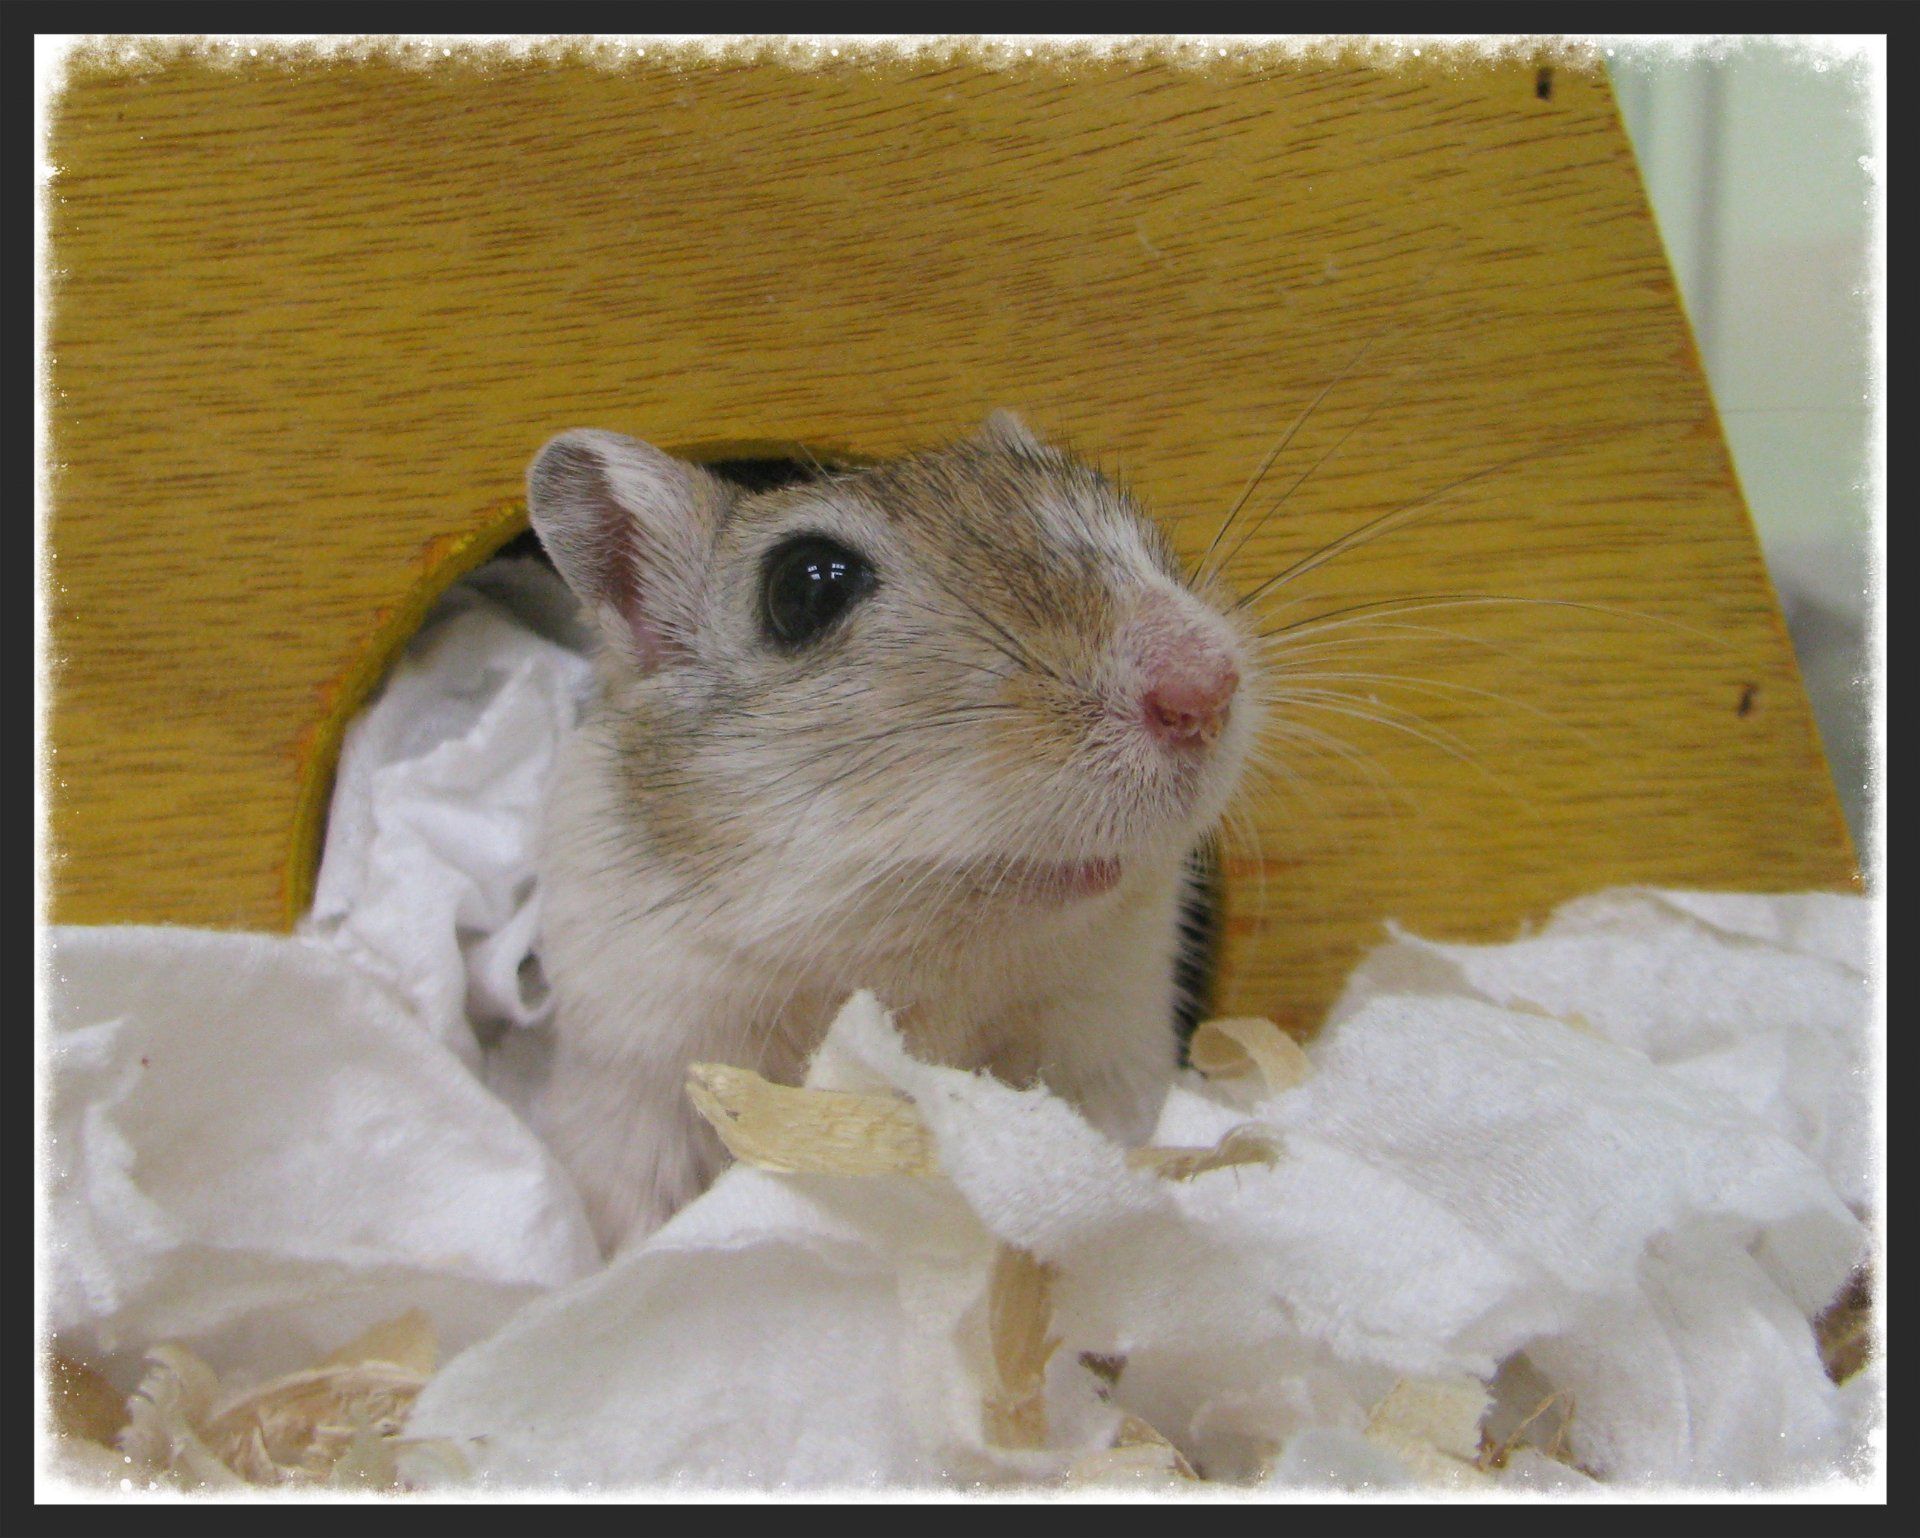 Gerbil used as sex object